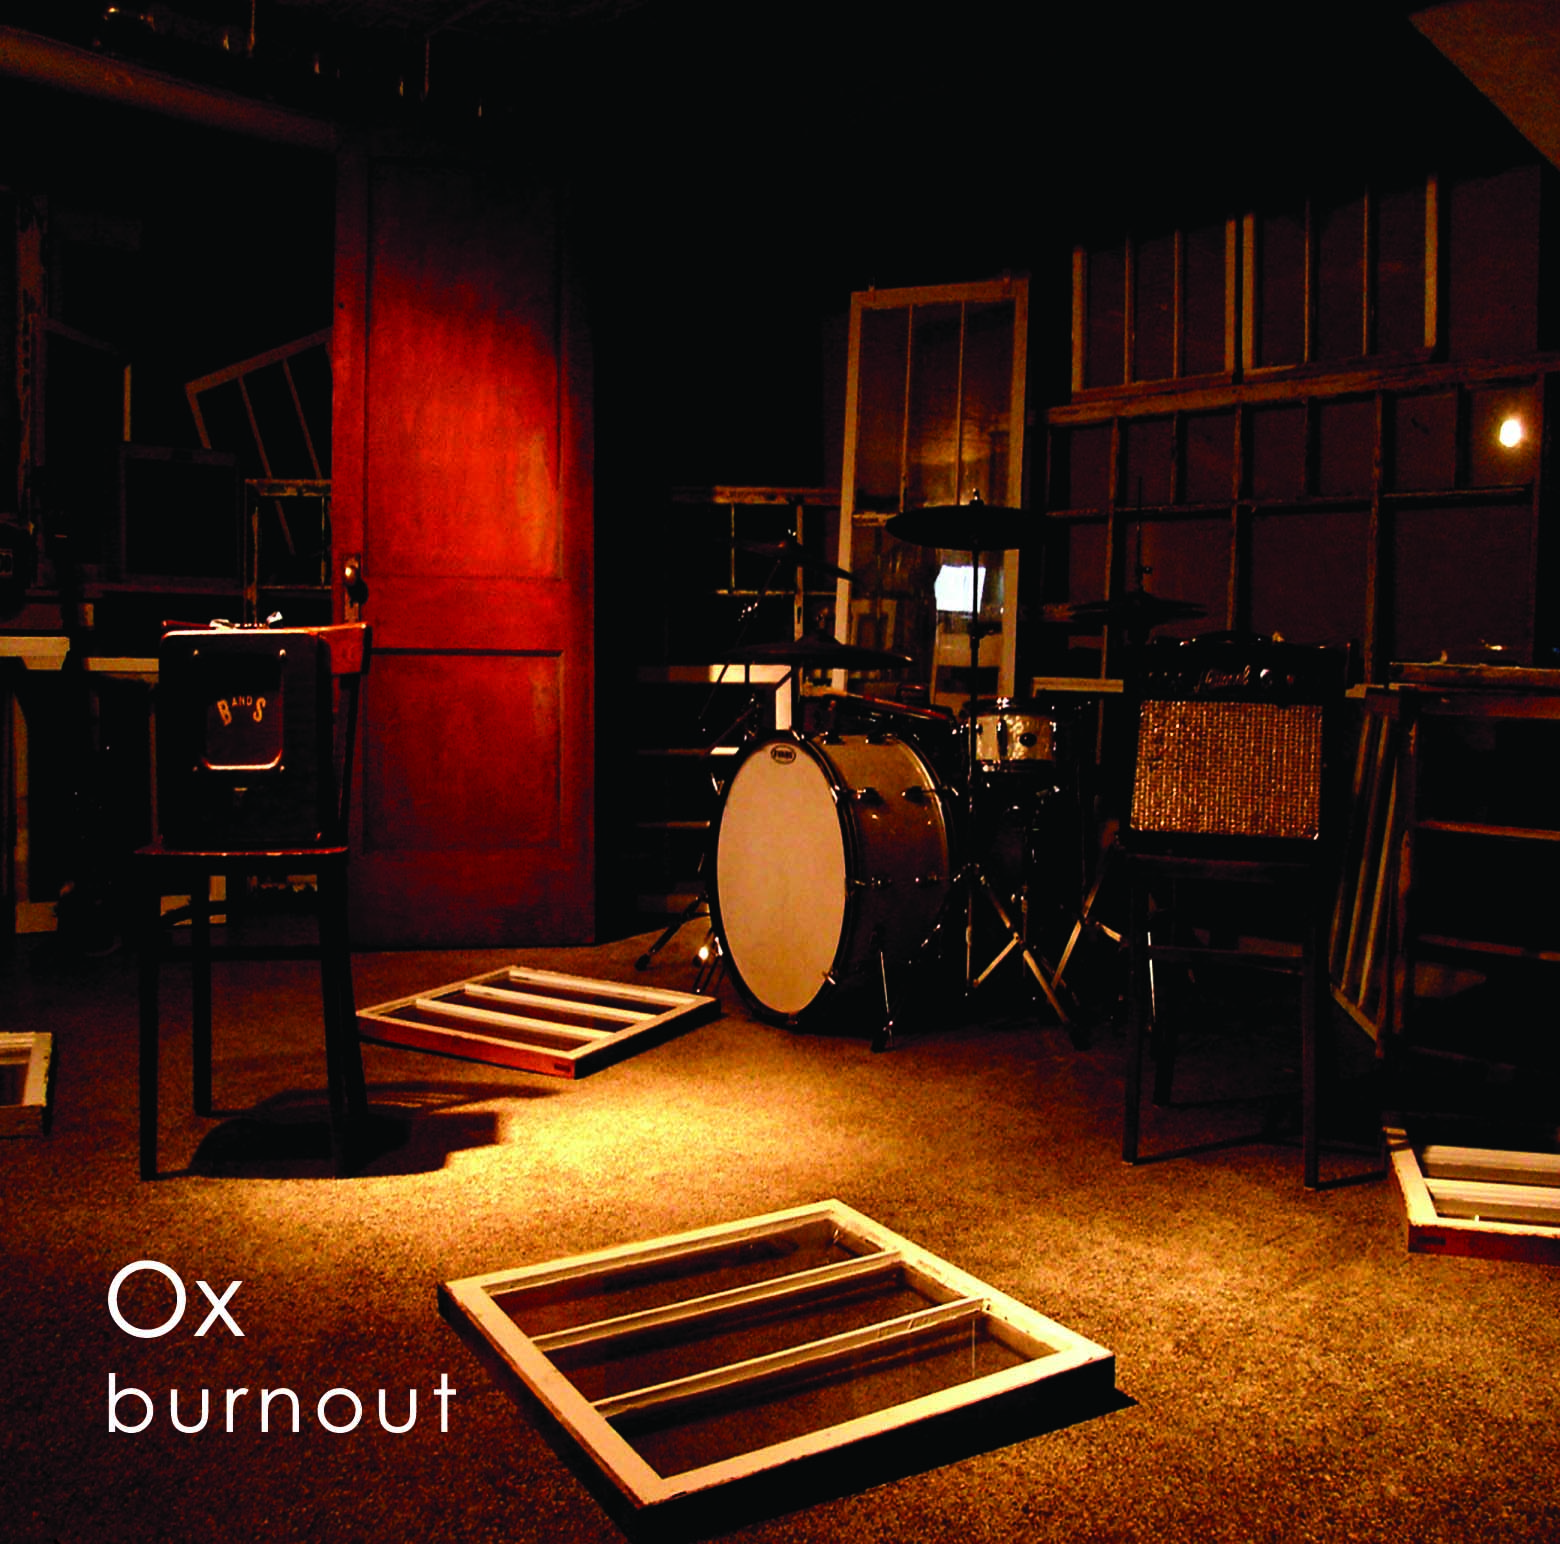 Ox - Burnout